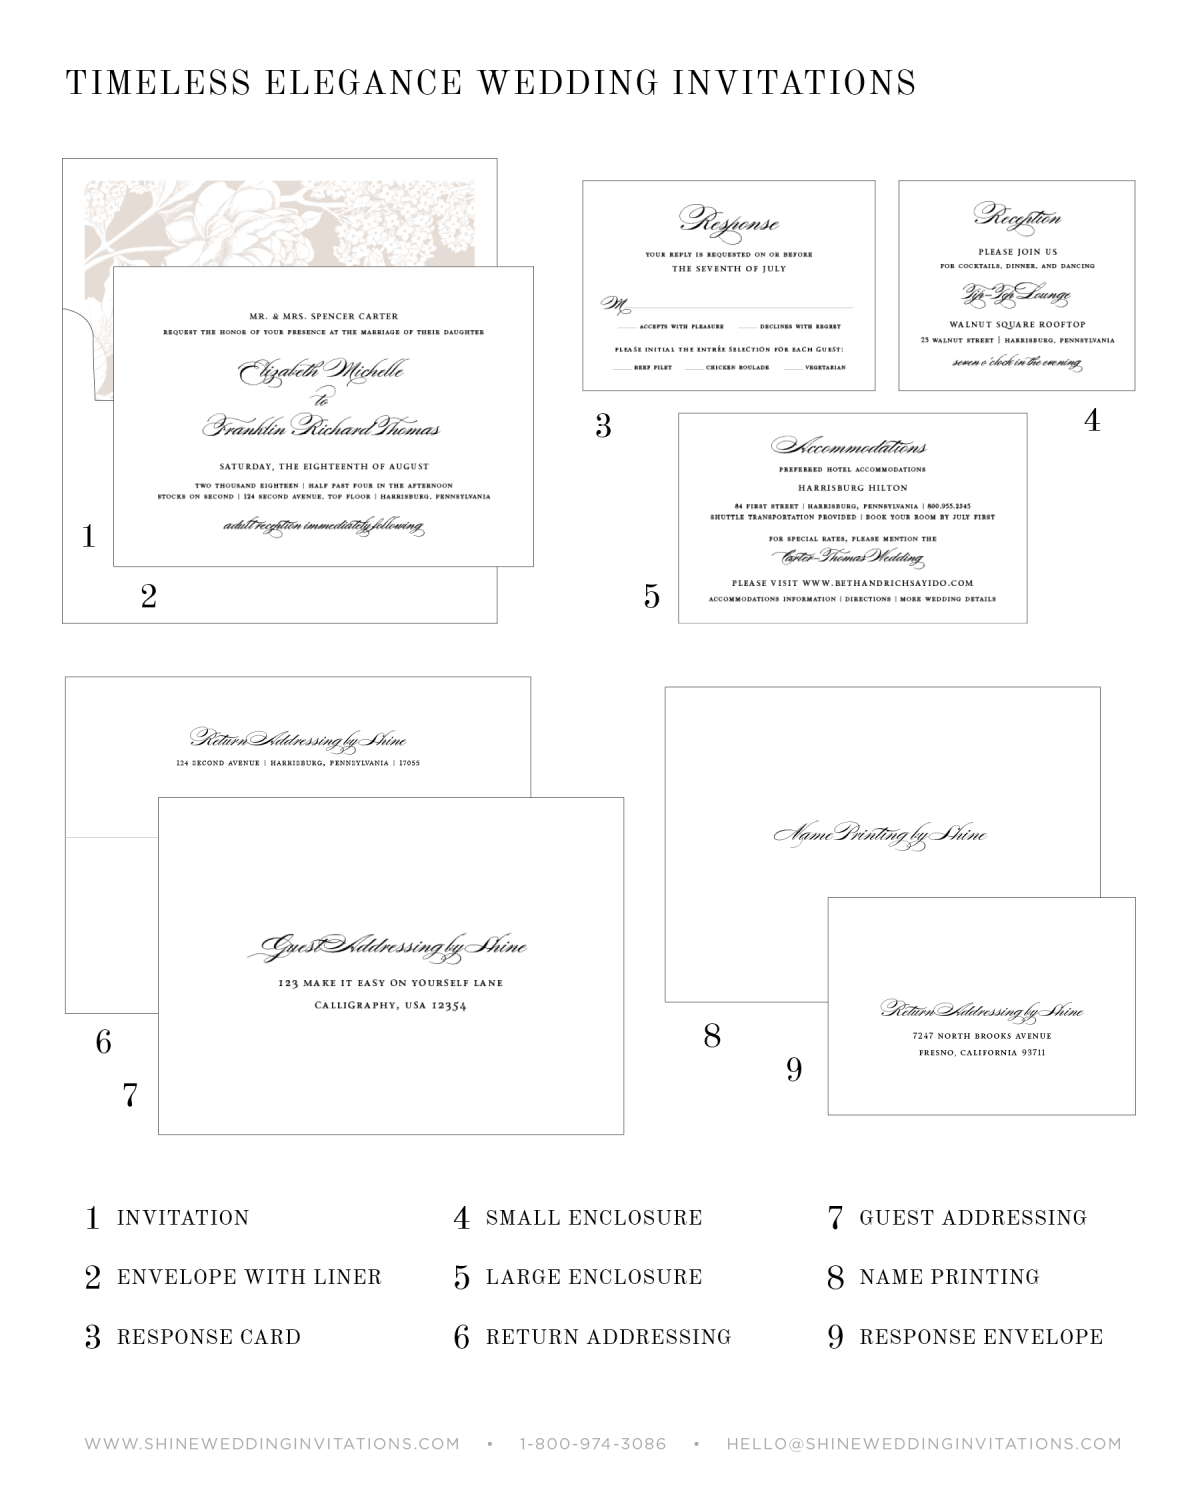 Timeless Elegance Wedding Invitation Diagram